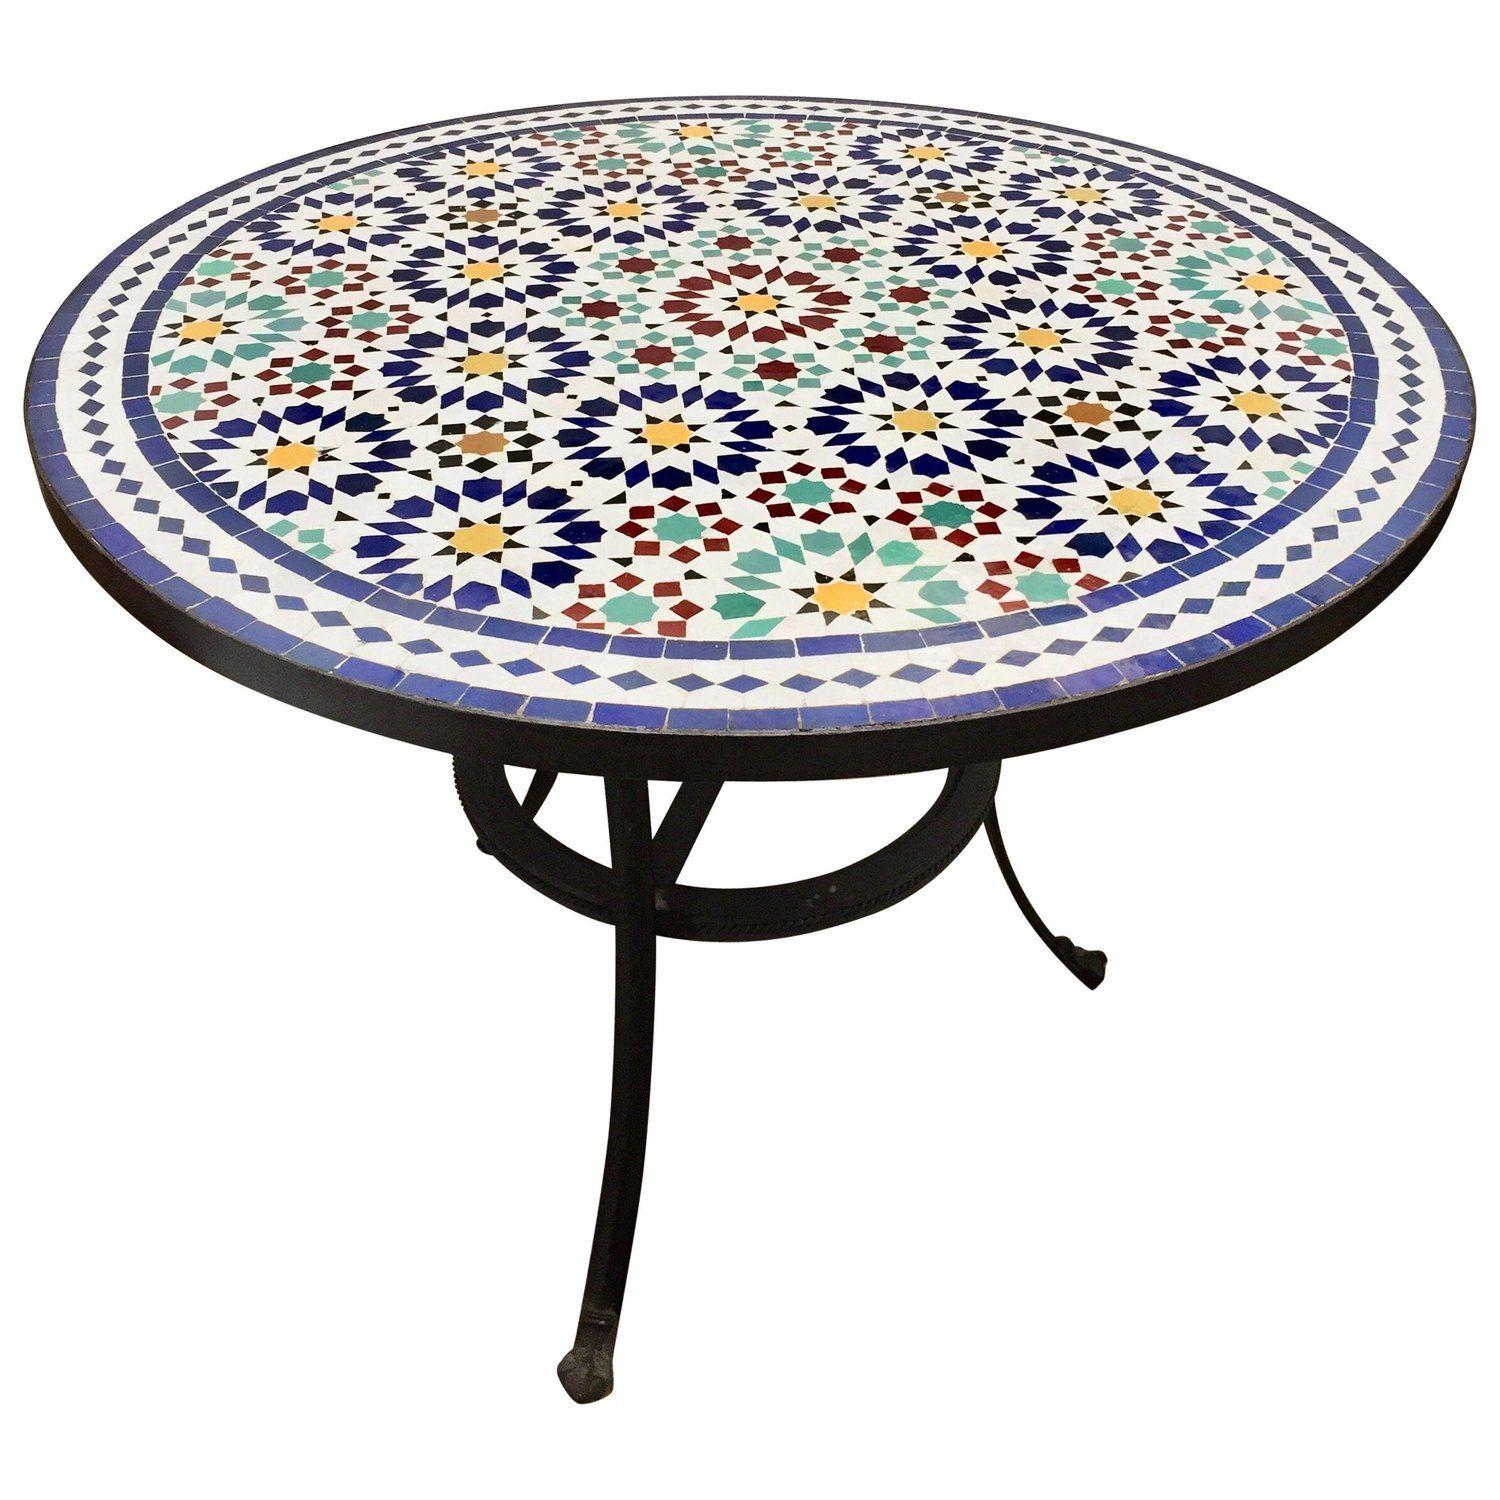 Moroccan Outdoor Mosaic Tile Table From Fez In Traditional Moorish Design Mosaic Tile Table Moorish Design Outdoor Mosaic Tiles